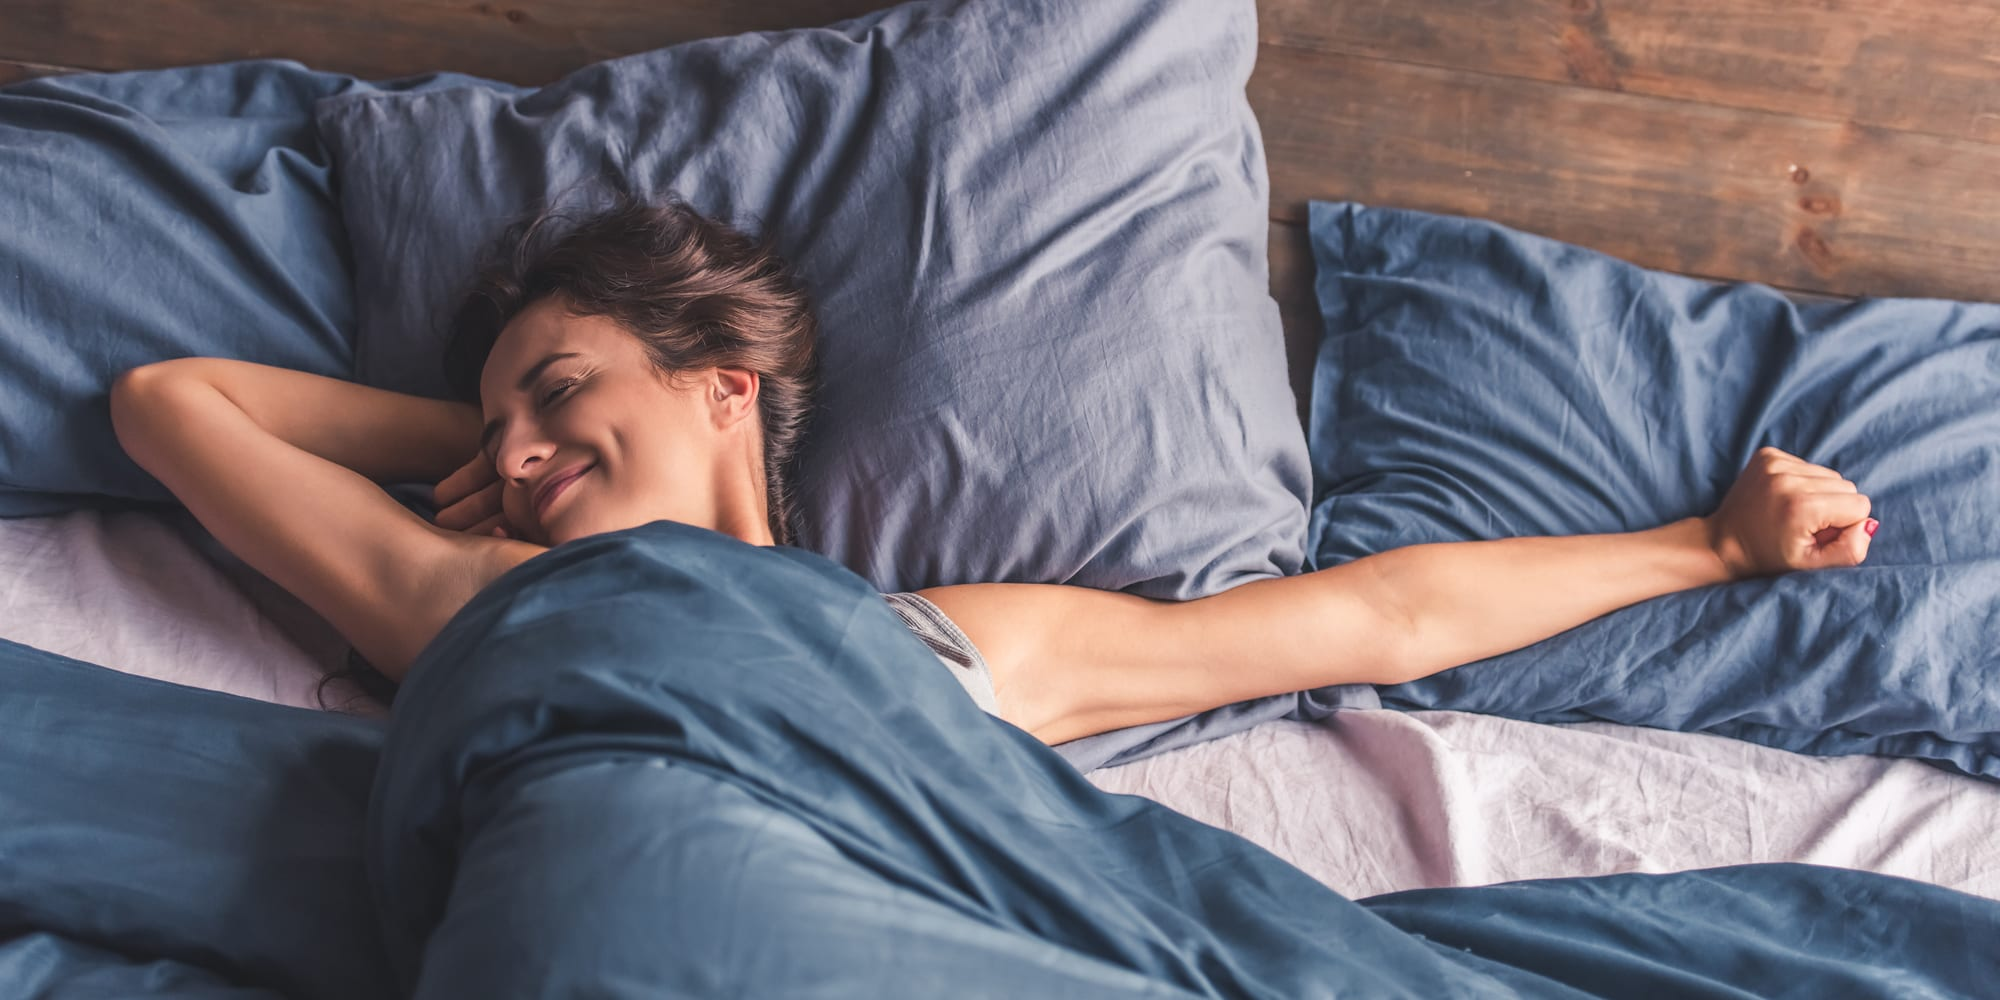 10 Easy Ways to Improve Your Sleep Hygiene